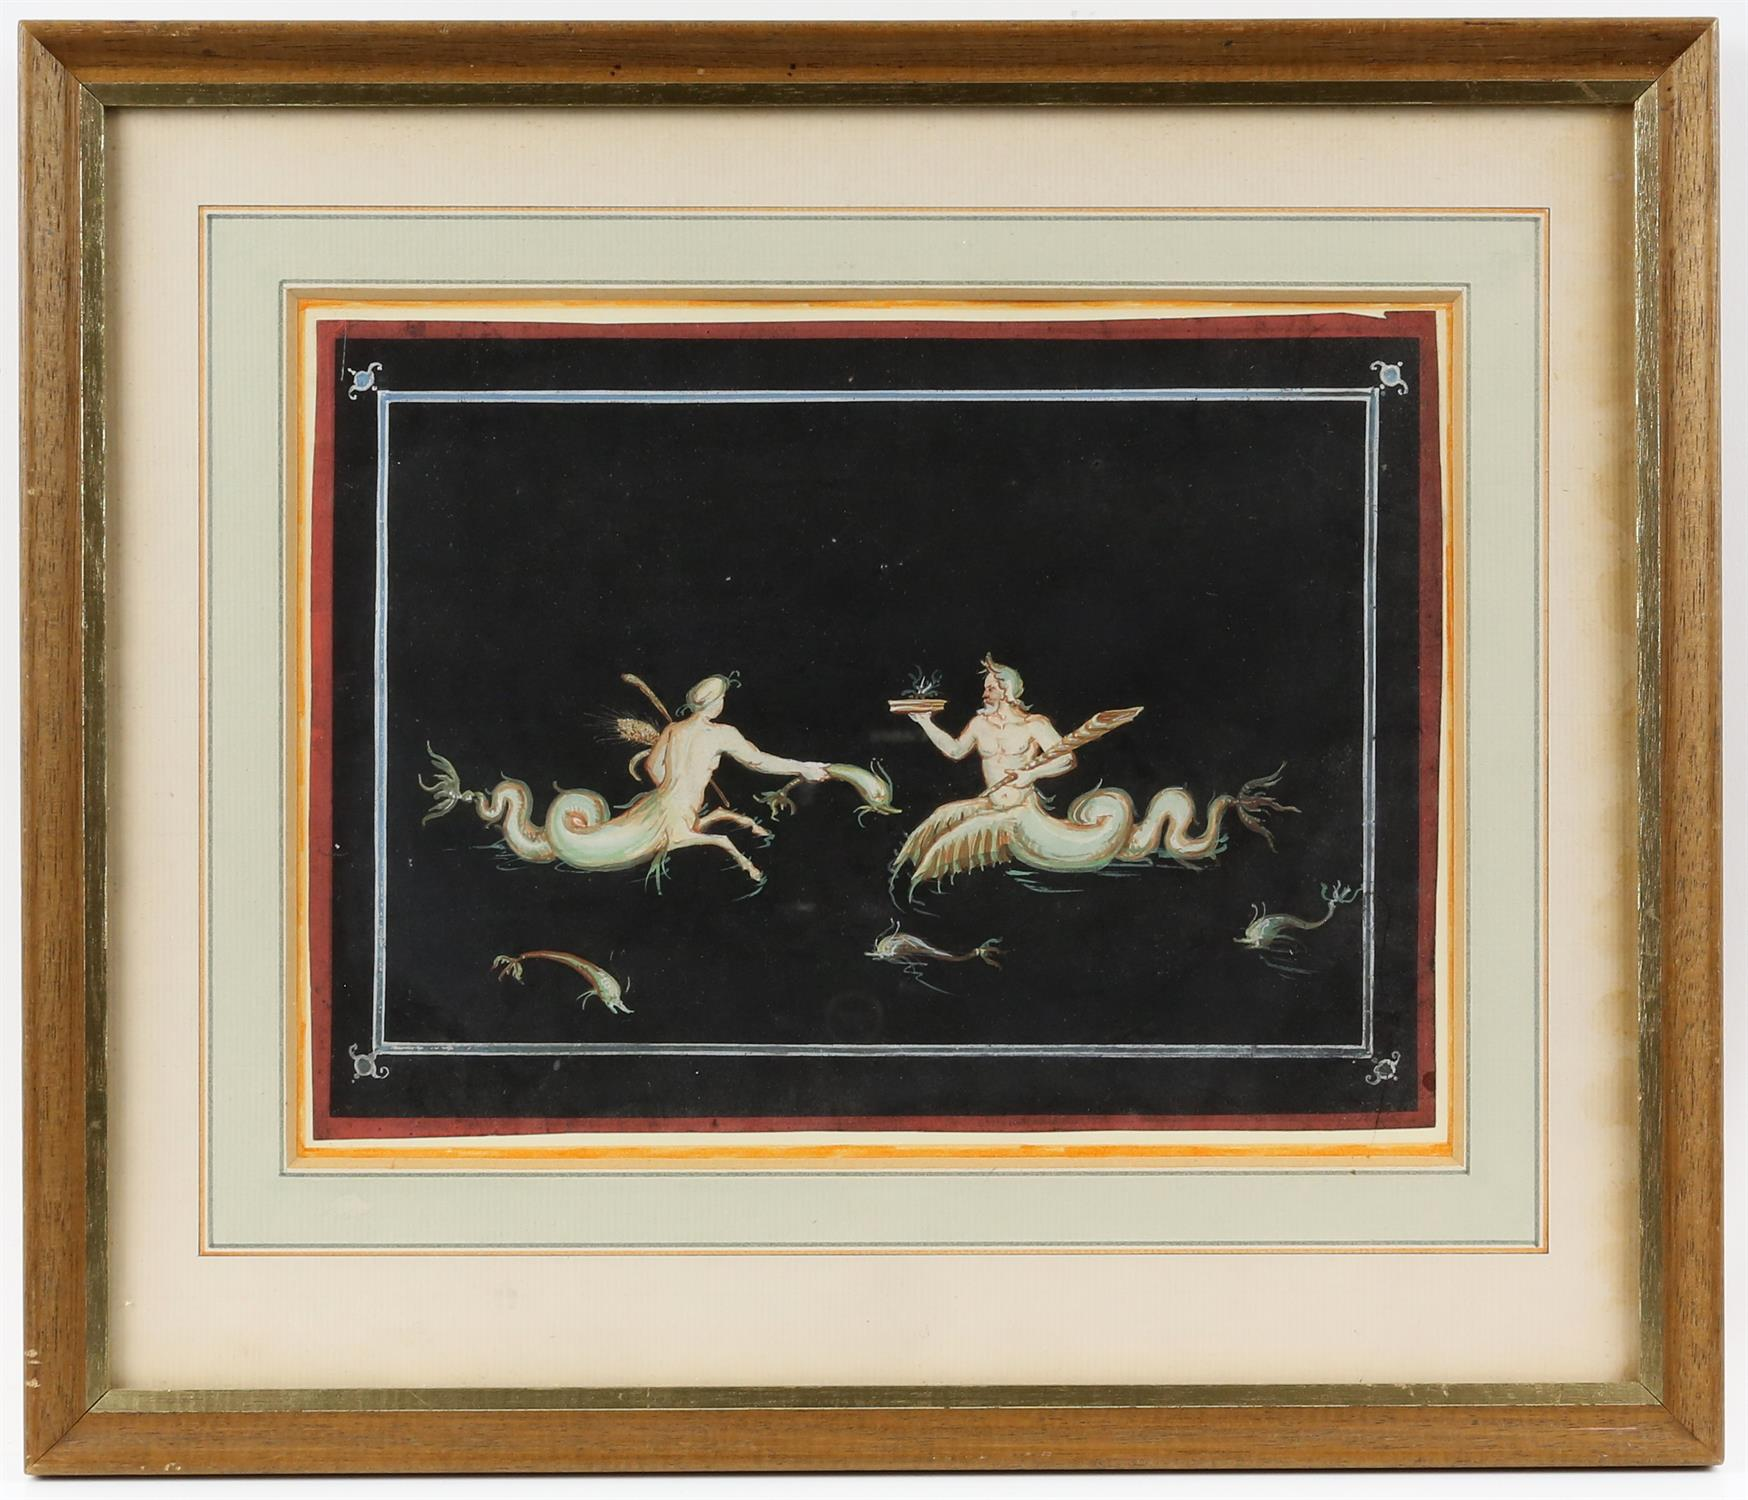 19th century Italian School, Pompeiian wall decoration for an interior, 22cm x 16.5cm, and another, - Image 6 of 7